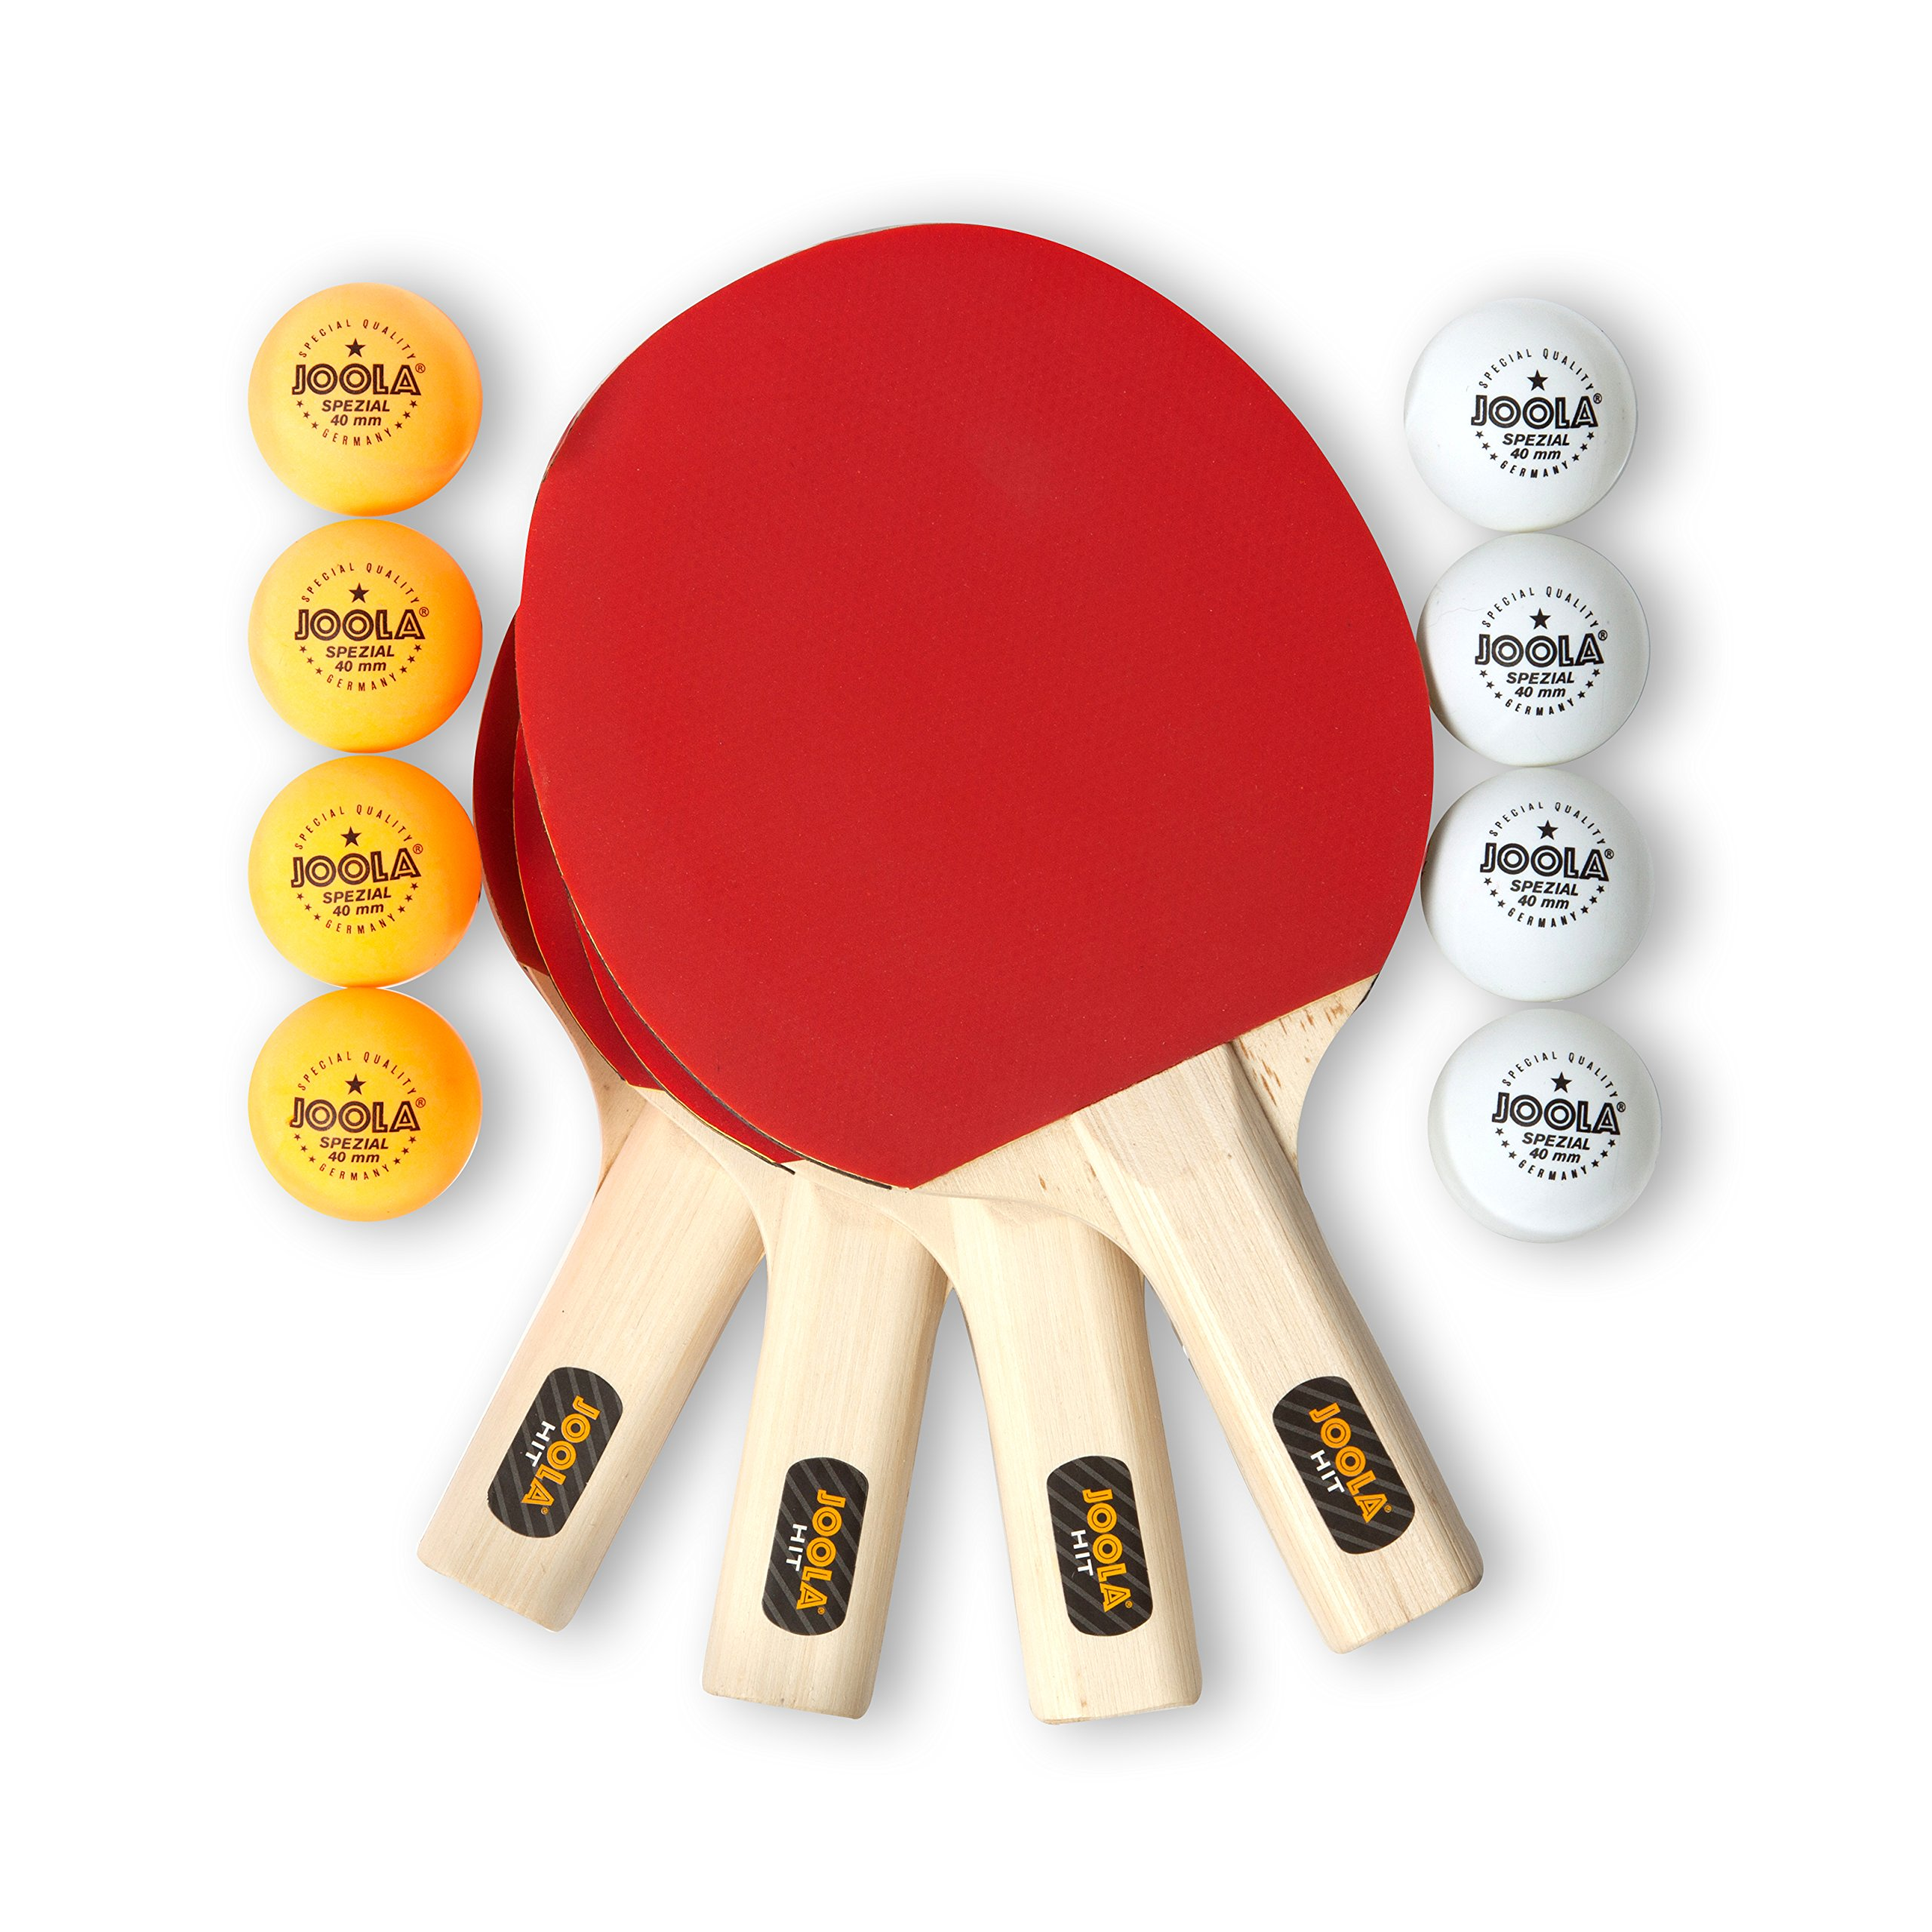 JOOLA Hit Set Bundle - Ping Pong Set for 4 Players - Includes 4 Pack Premium Ping Pong Paddles, 8 Table Tennis Balls, 1 Carrying Case - Each Racket is Designed to Optimize Spin and Control by JOOLA